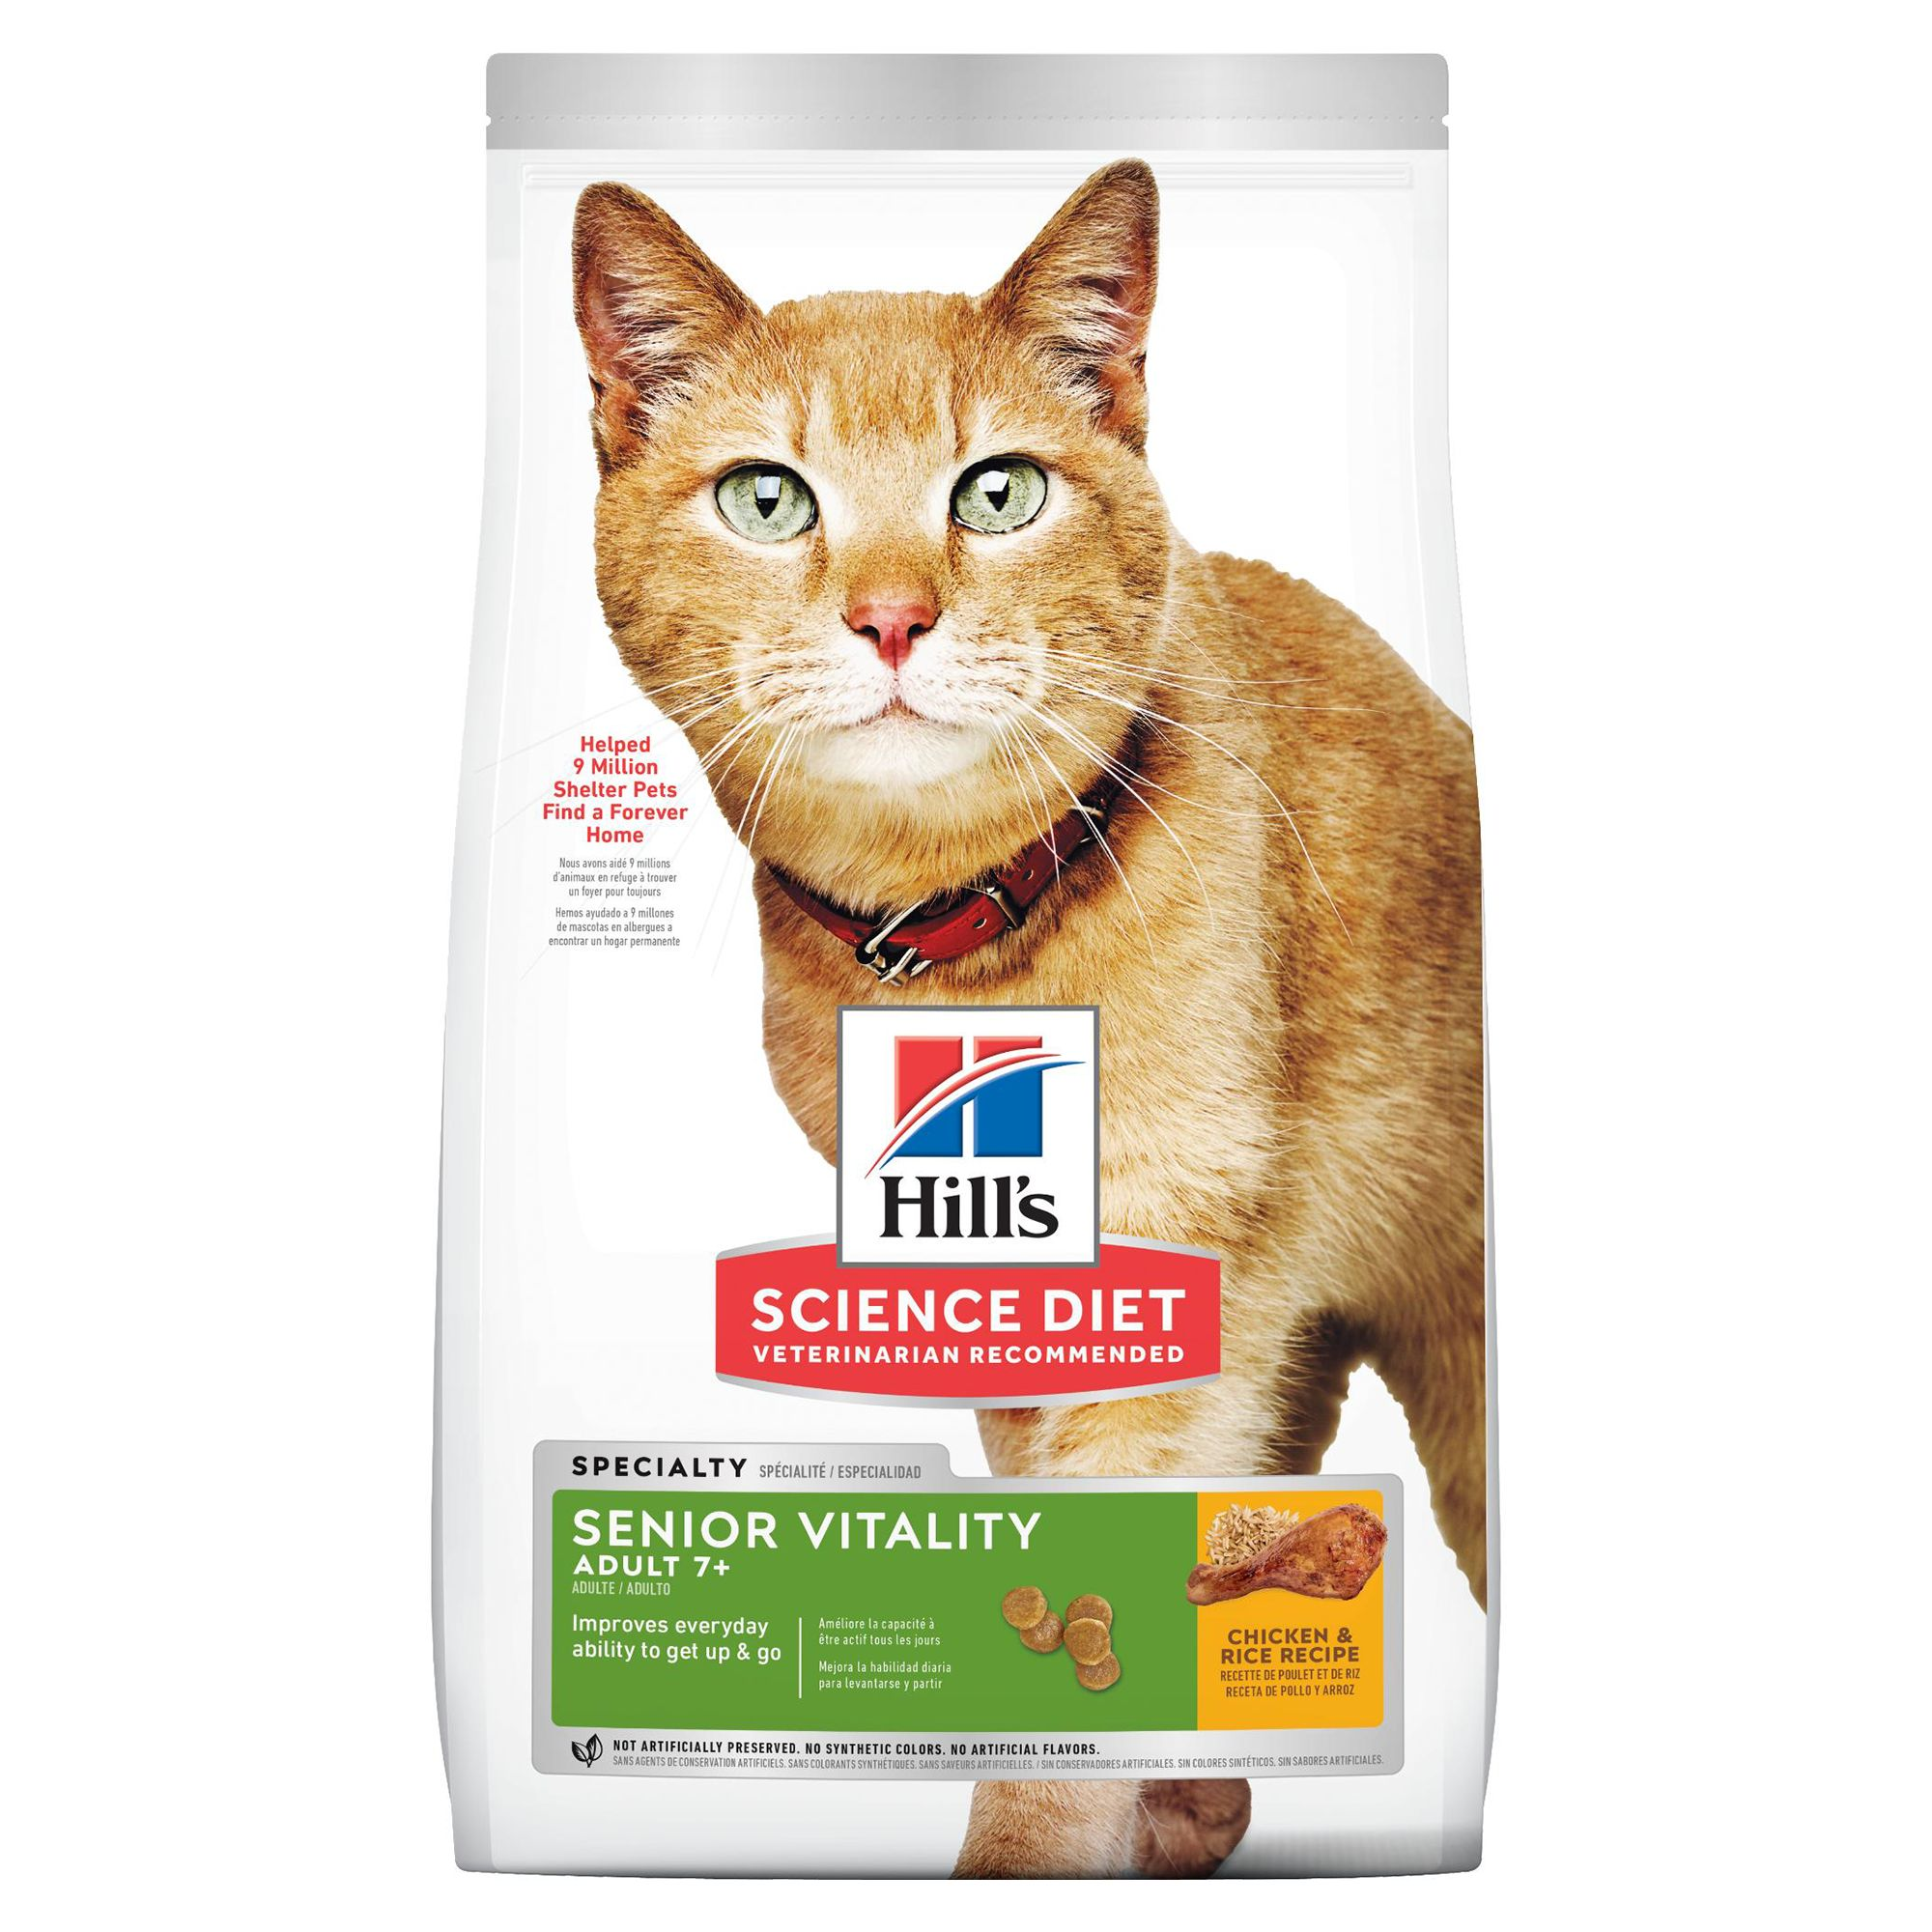 Hill's® Science Diet® Youthful Vitality Adult 7+ Cat Food - Chicken & Rice